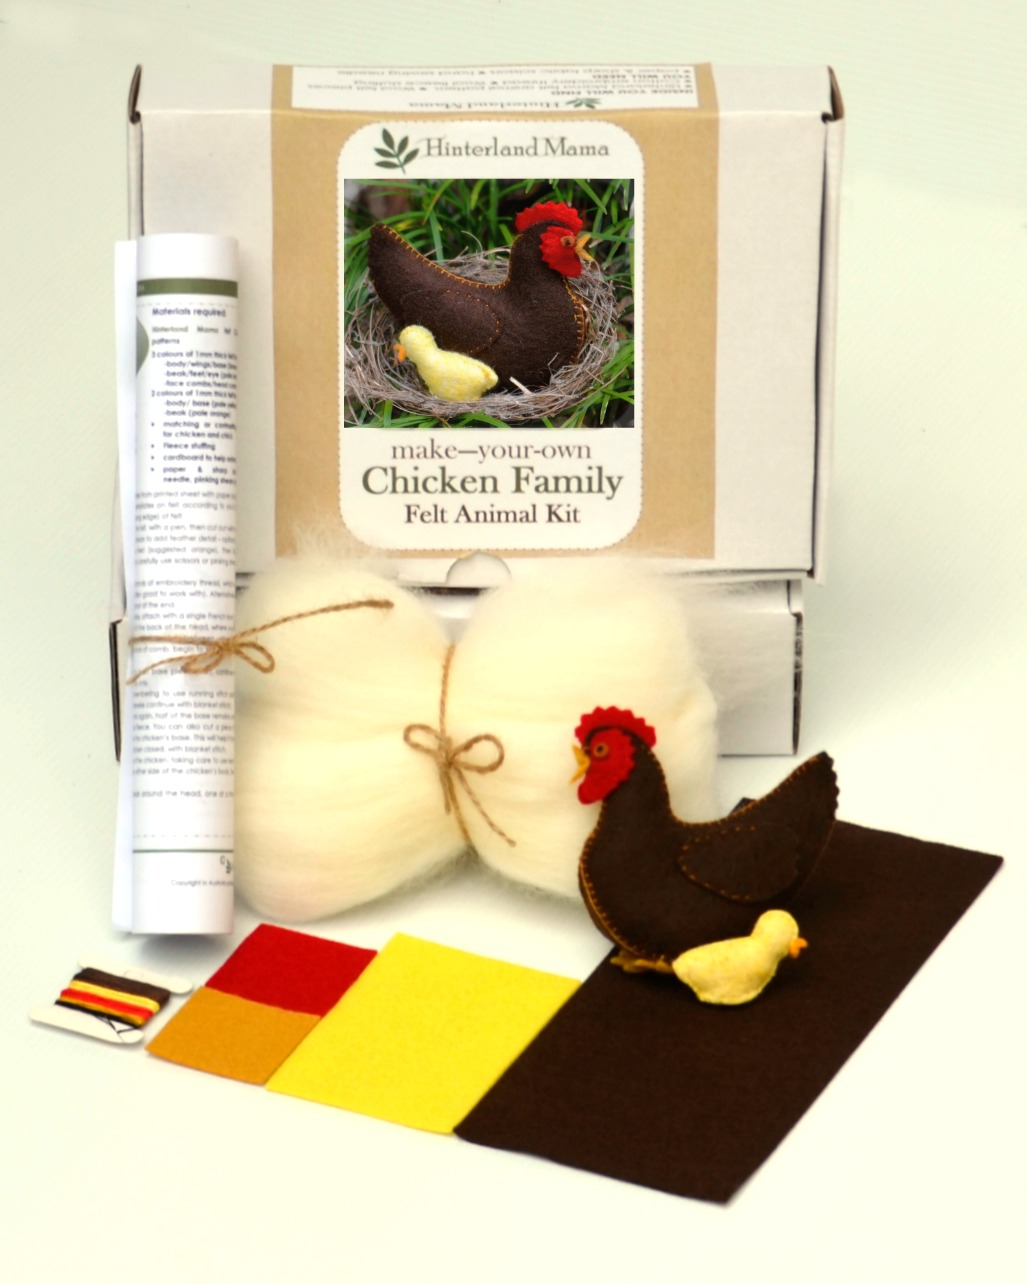 http://www.etsy.com/listing/185853053/kit-to-make-a-farmyard-chicken-family